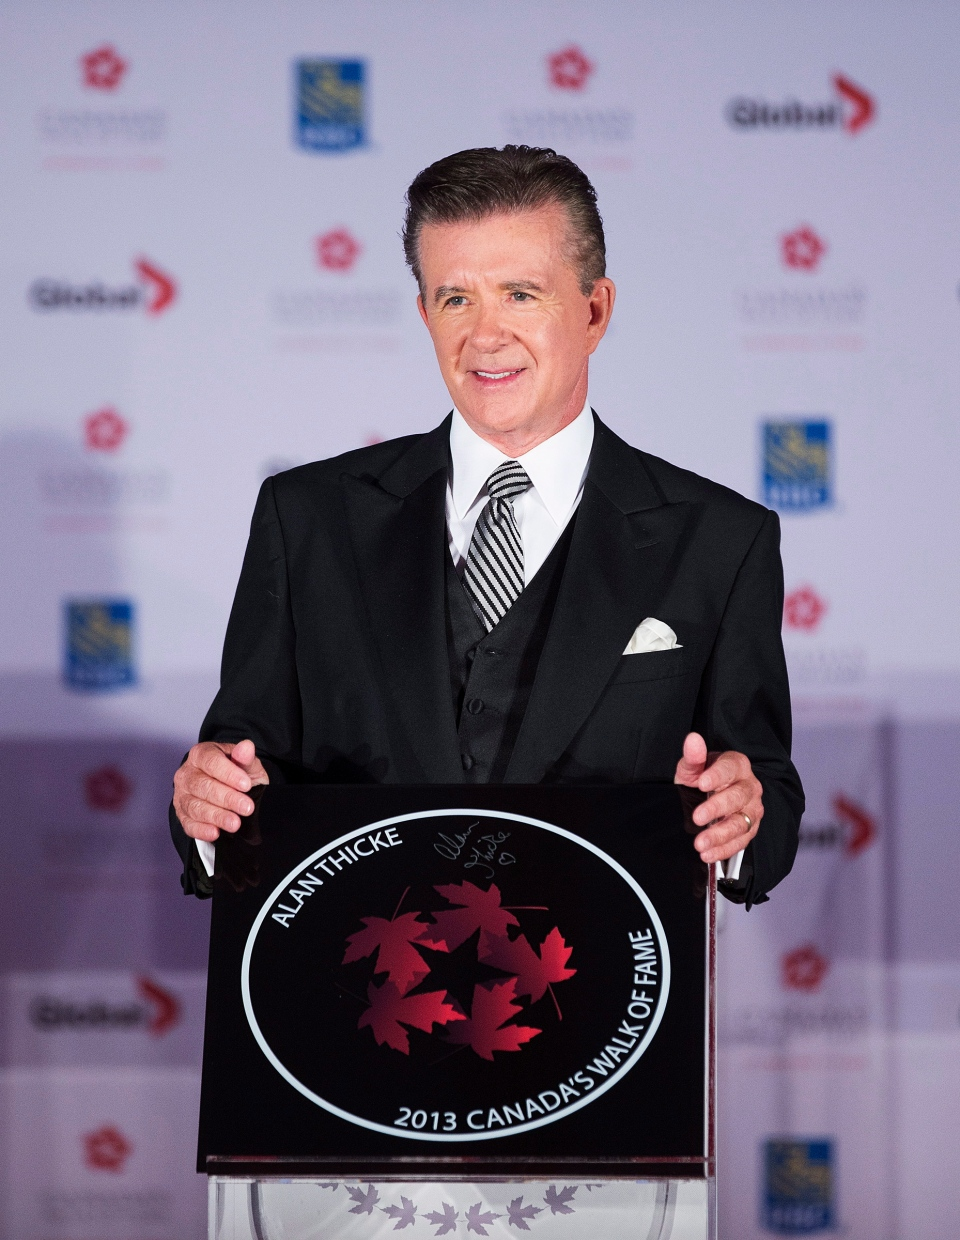 Actor Alan Thicke poses for a photo during his induction ceremony into Canada's Walk of Fame in Toronto on Saturday, September 21, 2013. (Michelle Siu / THE CANADIAN PRESS)